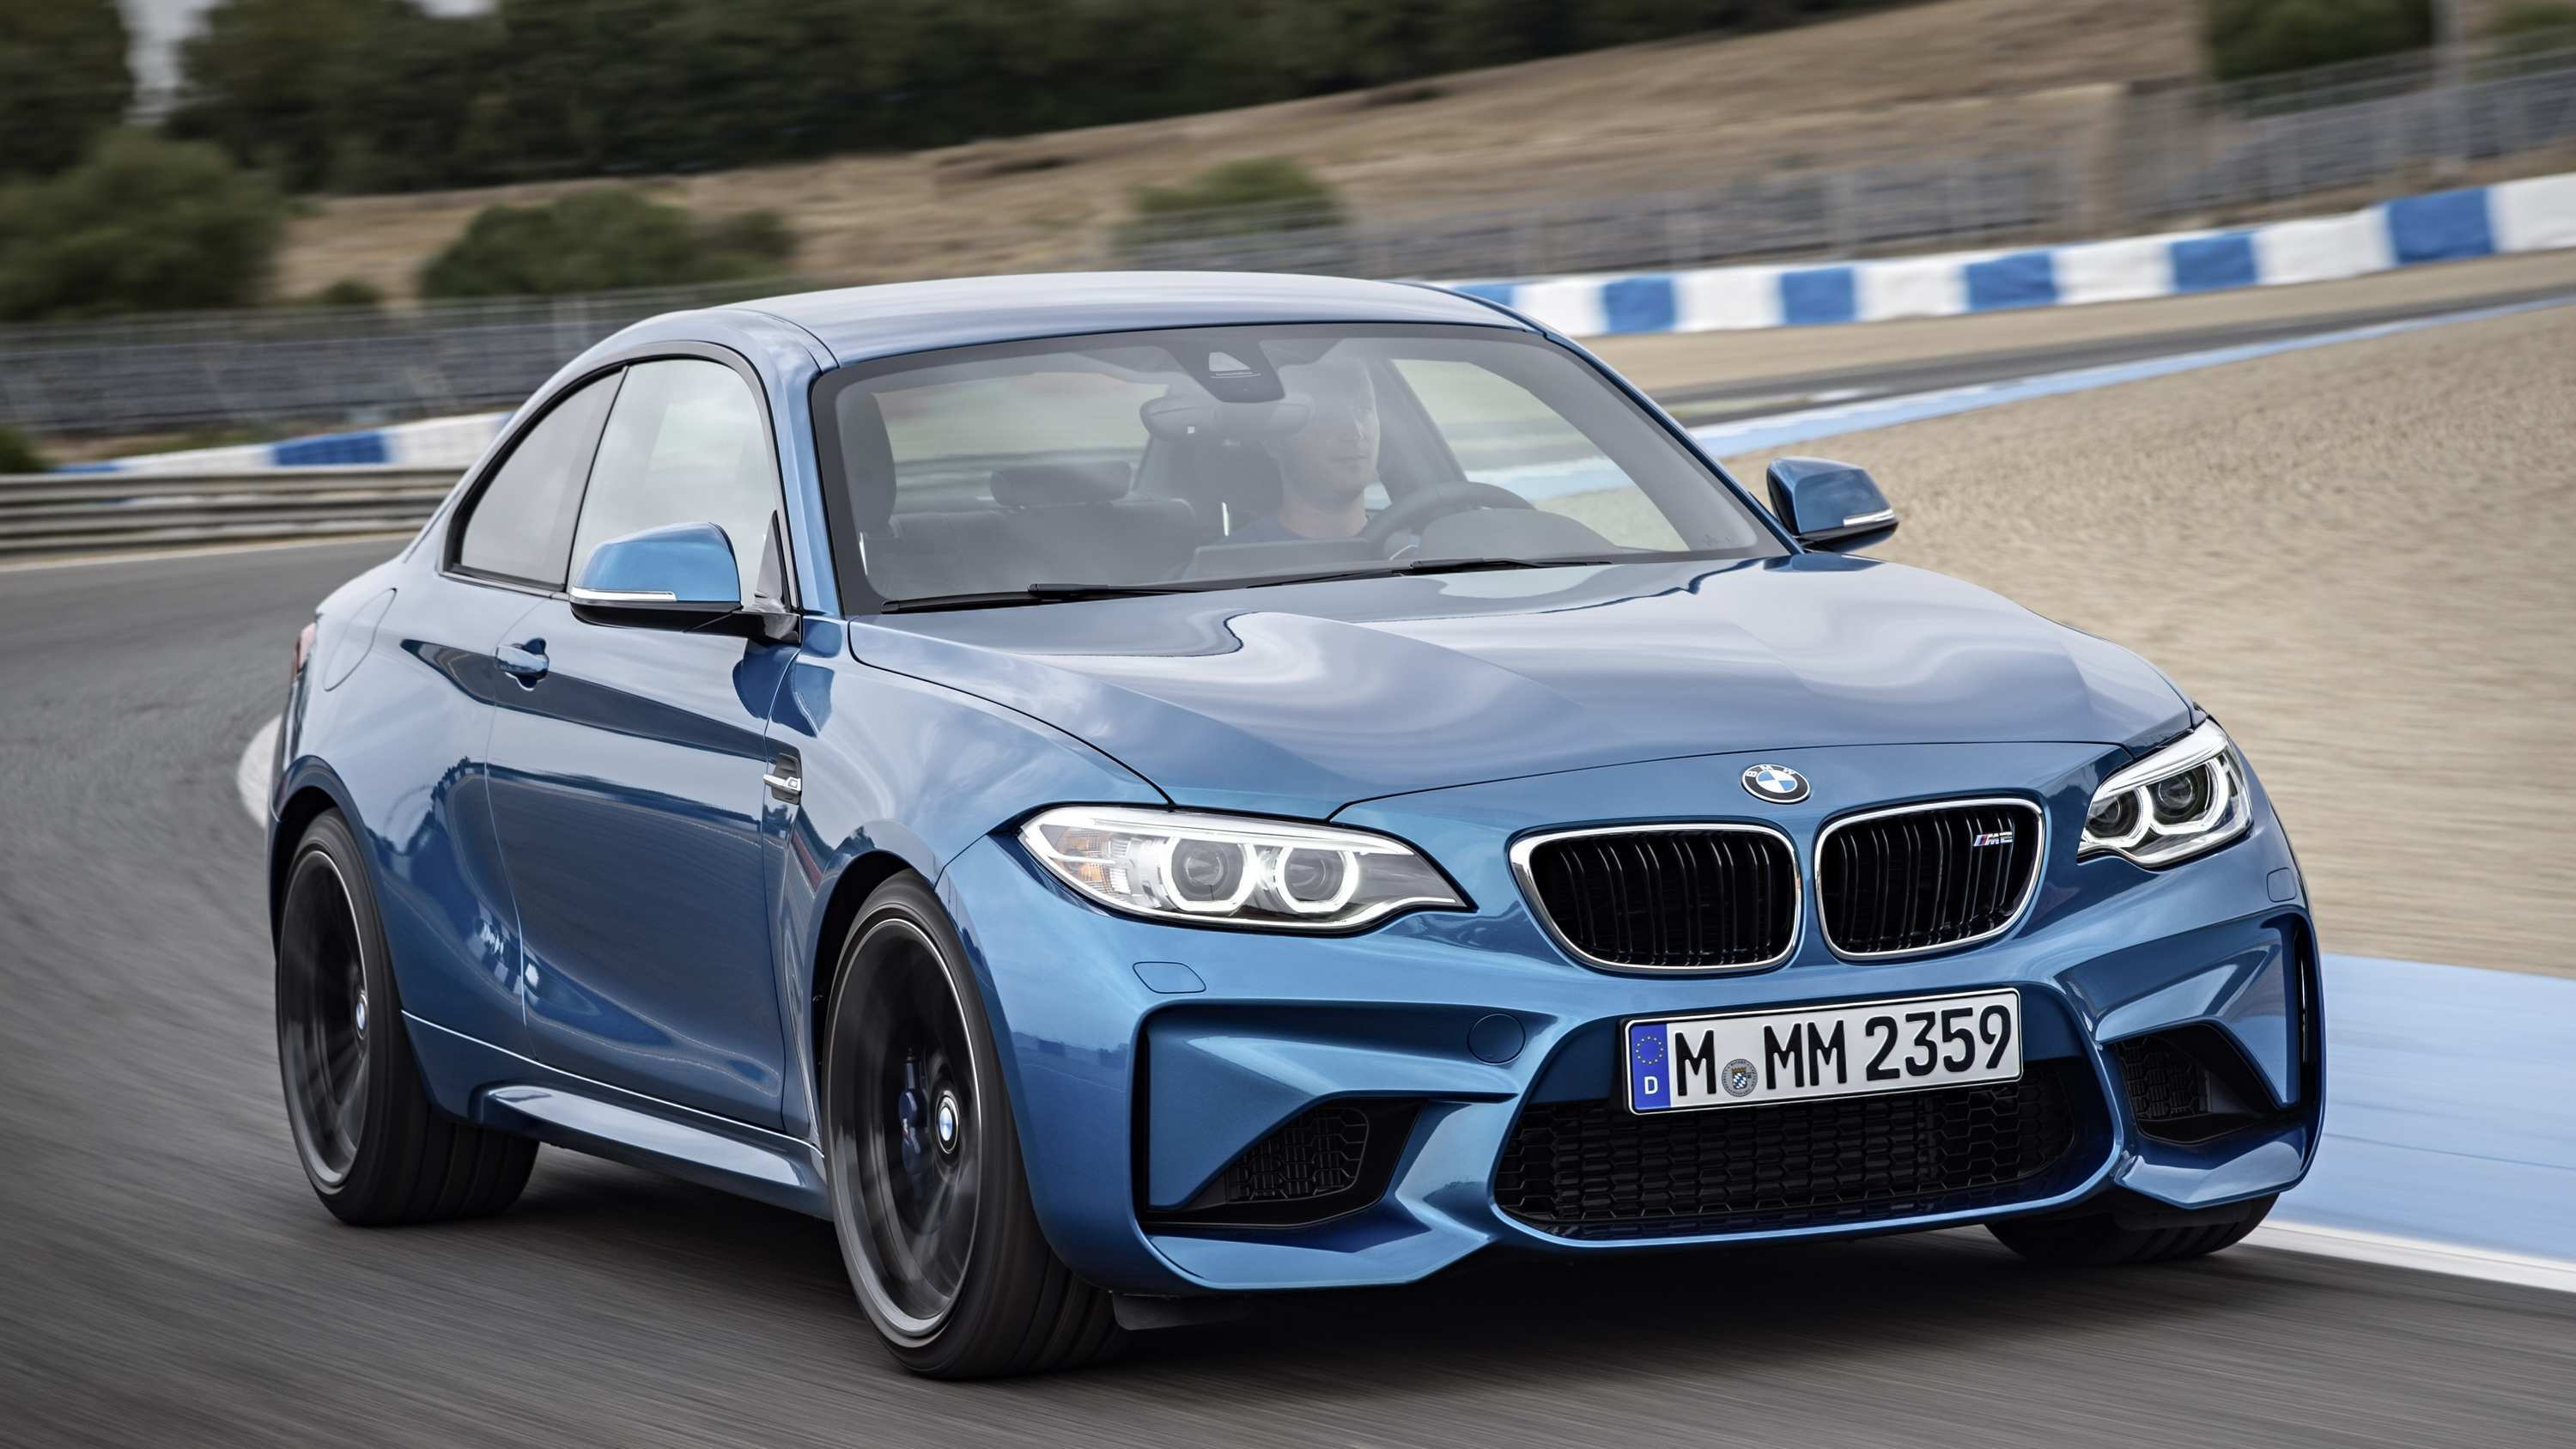 65 Best Review 2020 BMW M2 Price by 2020 BMW M2